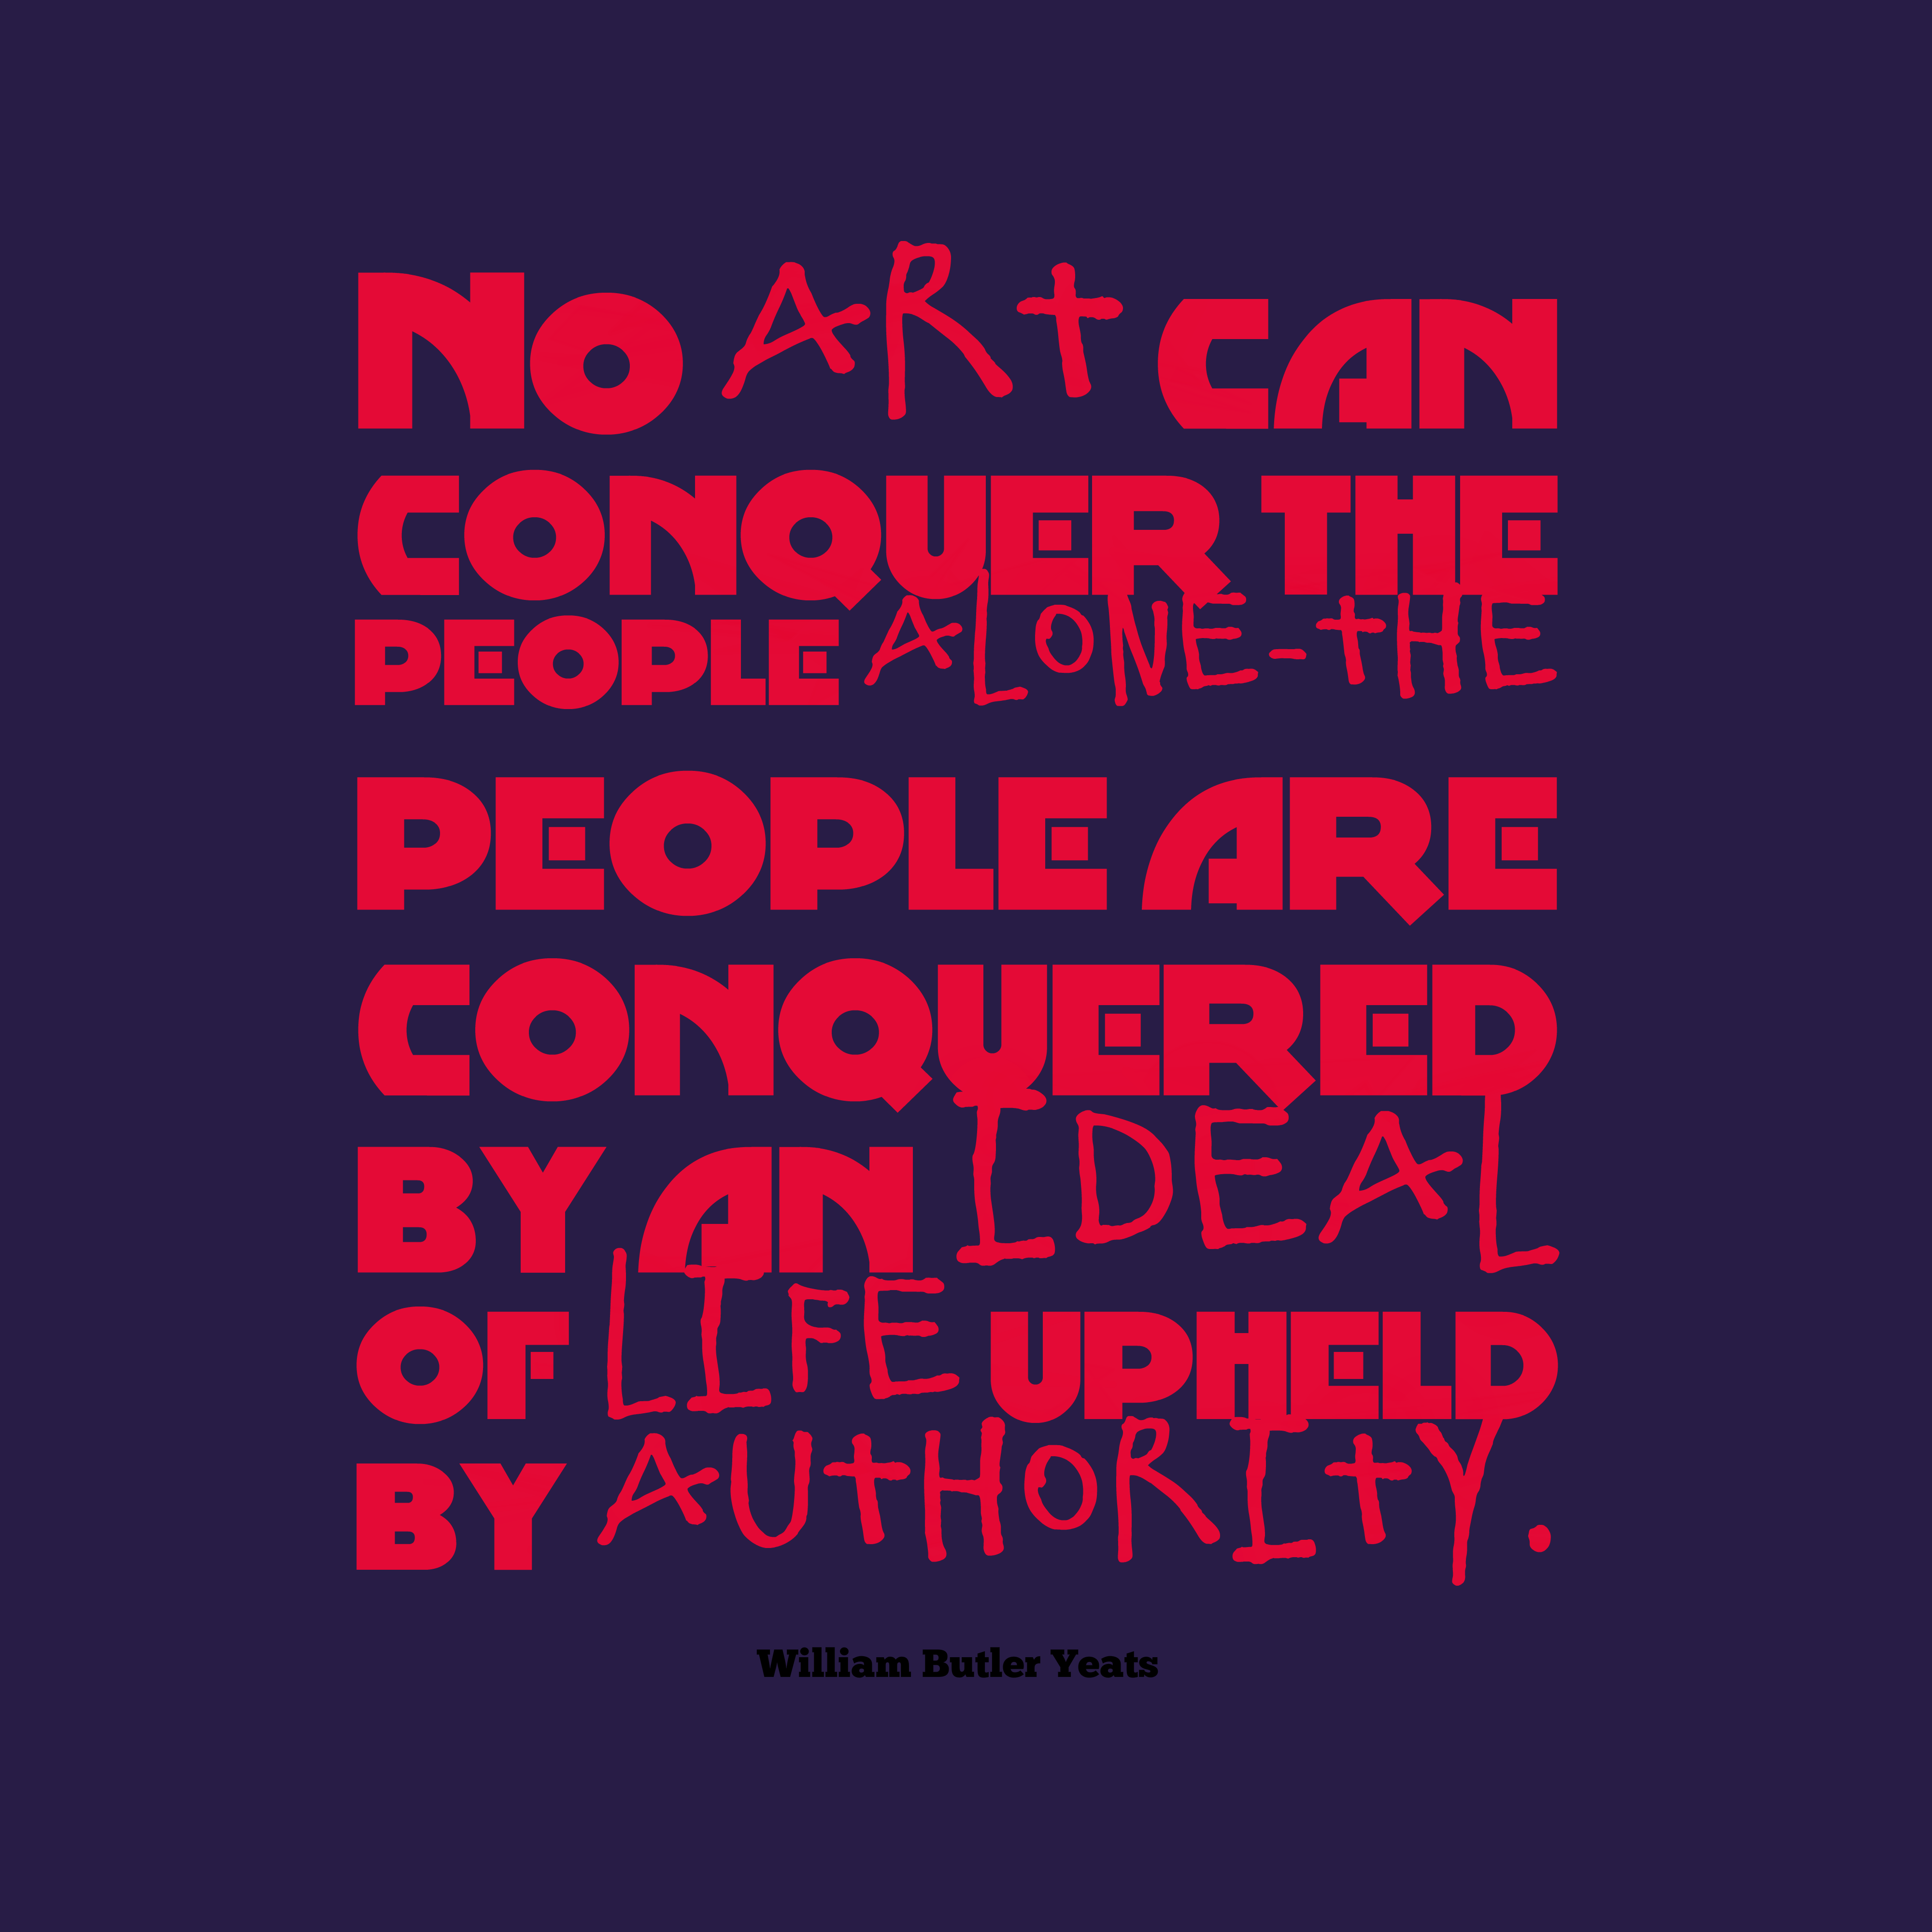 Quotes image of No art can conquer the people alone-the people are conquered by an ideal of life upheld by authority.